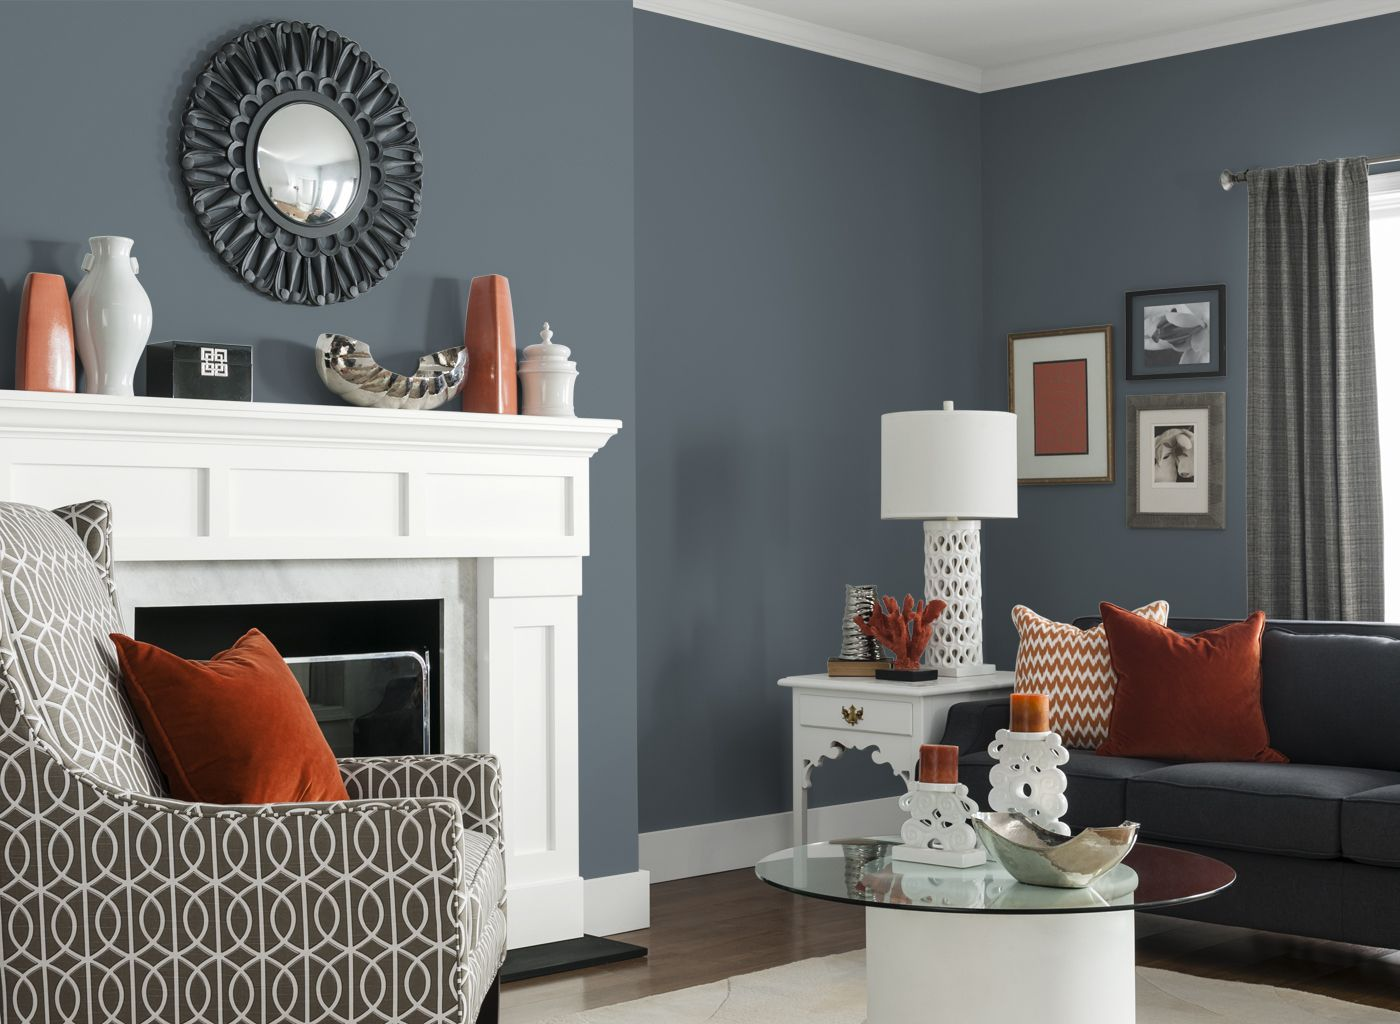 Best Living Room In Glidden S French Grey 70Bg 19 071 Blue 400 x 300